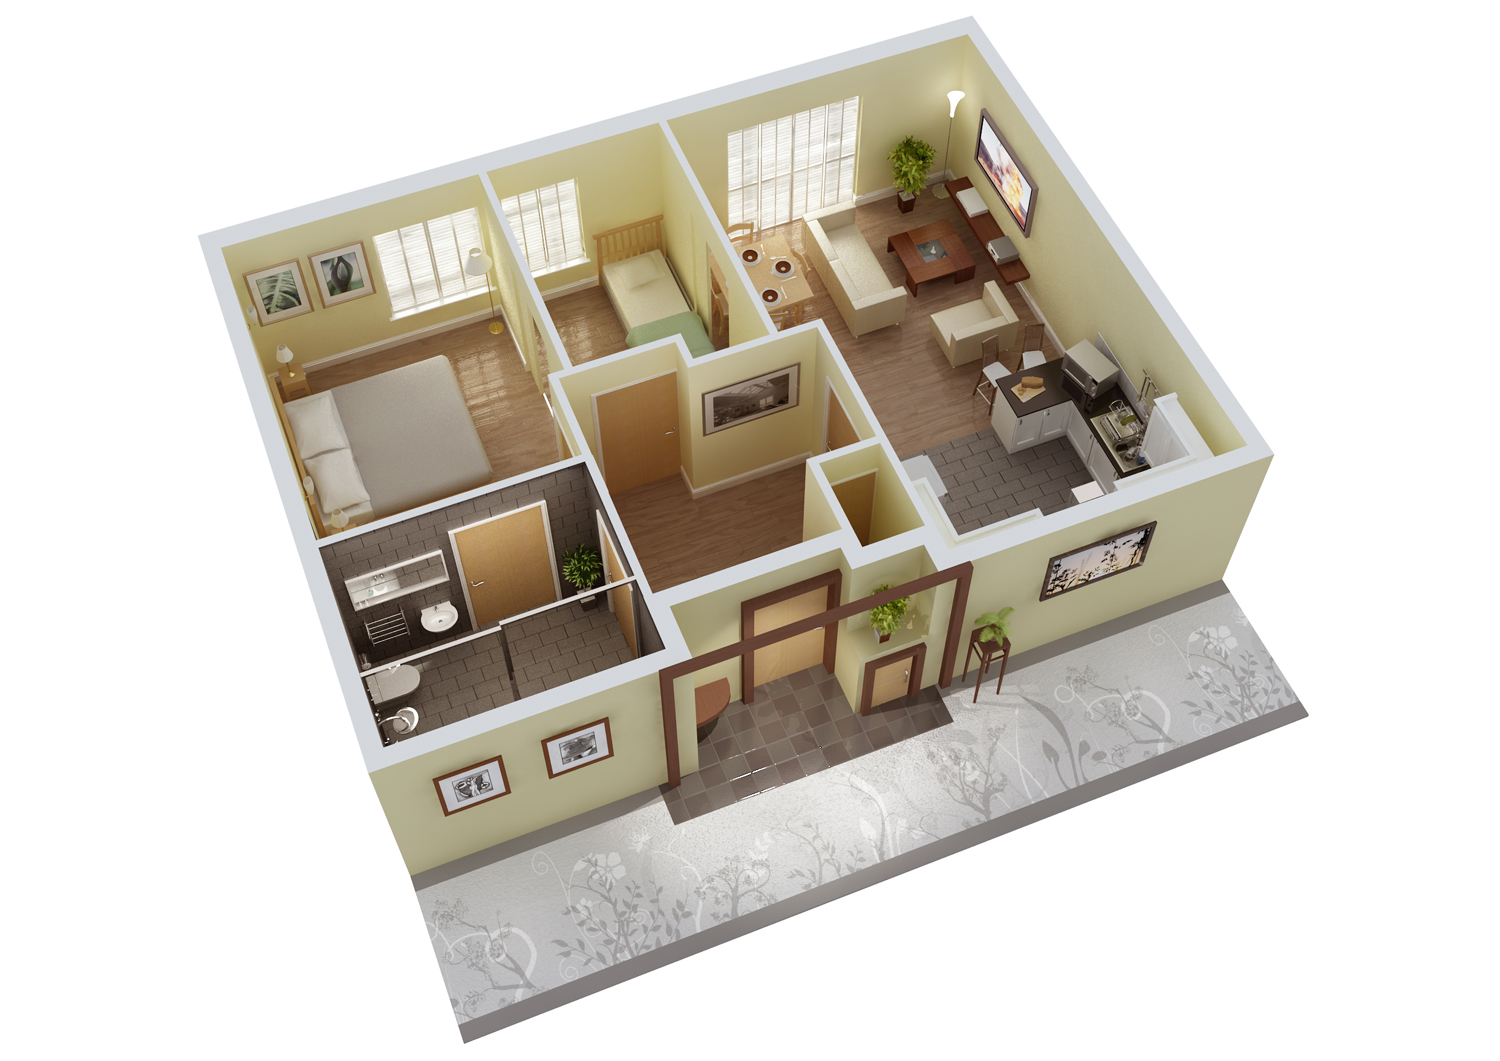 Mathematics resources project 3d floor plan 3d design room planner